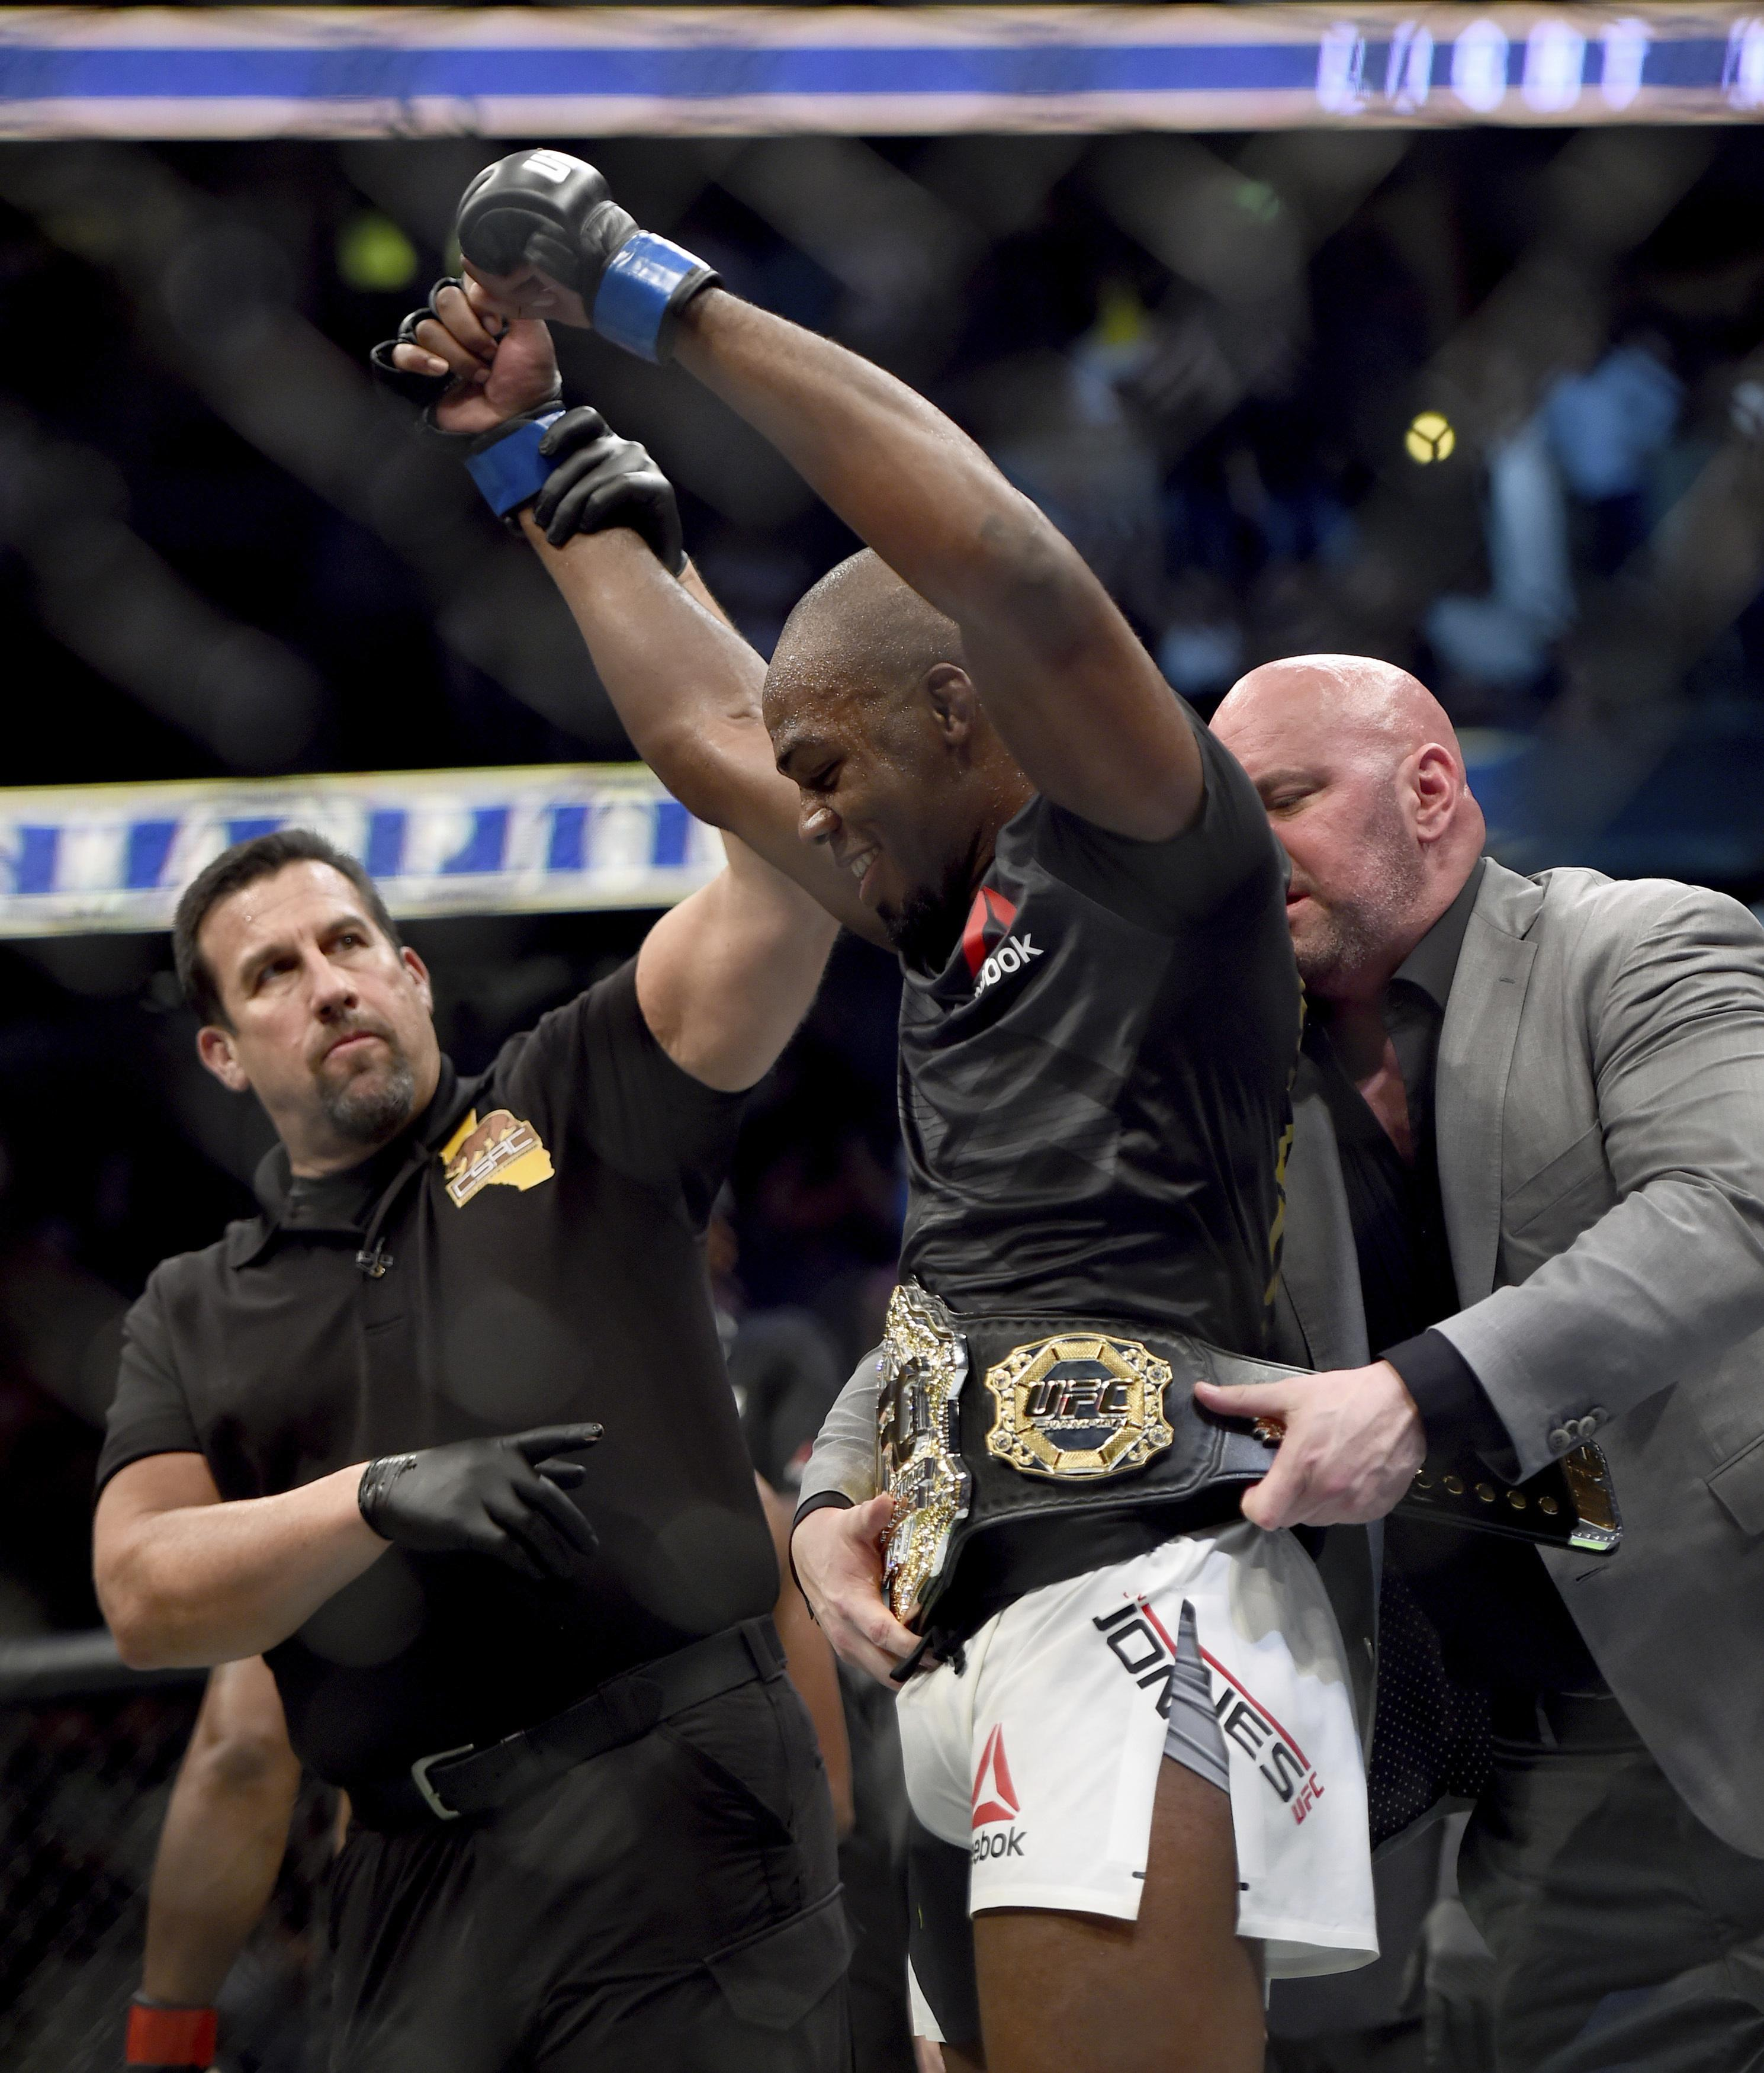 Jon Jones is now clear to return for UFC 230 at Madison Square Garden in November